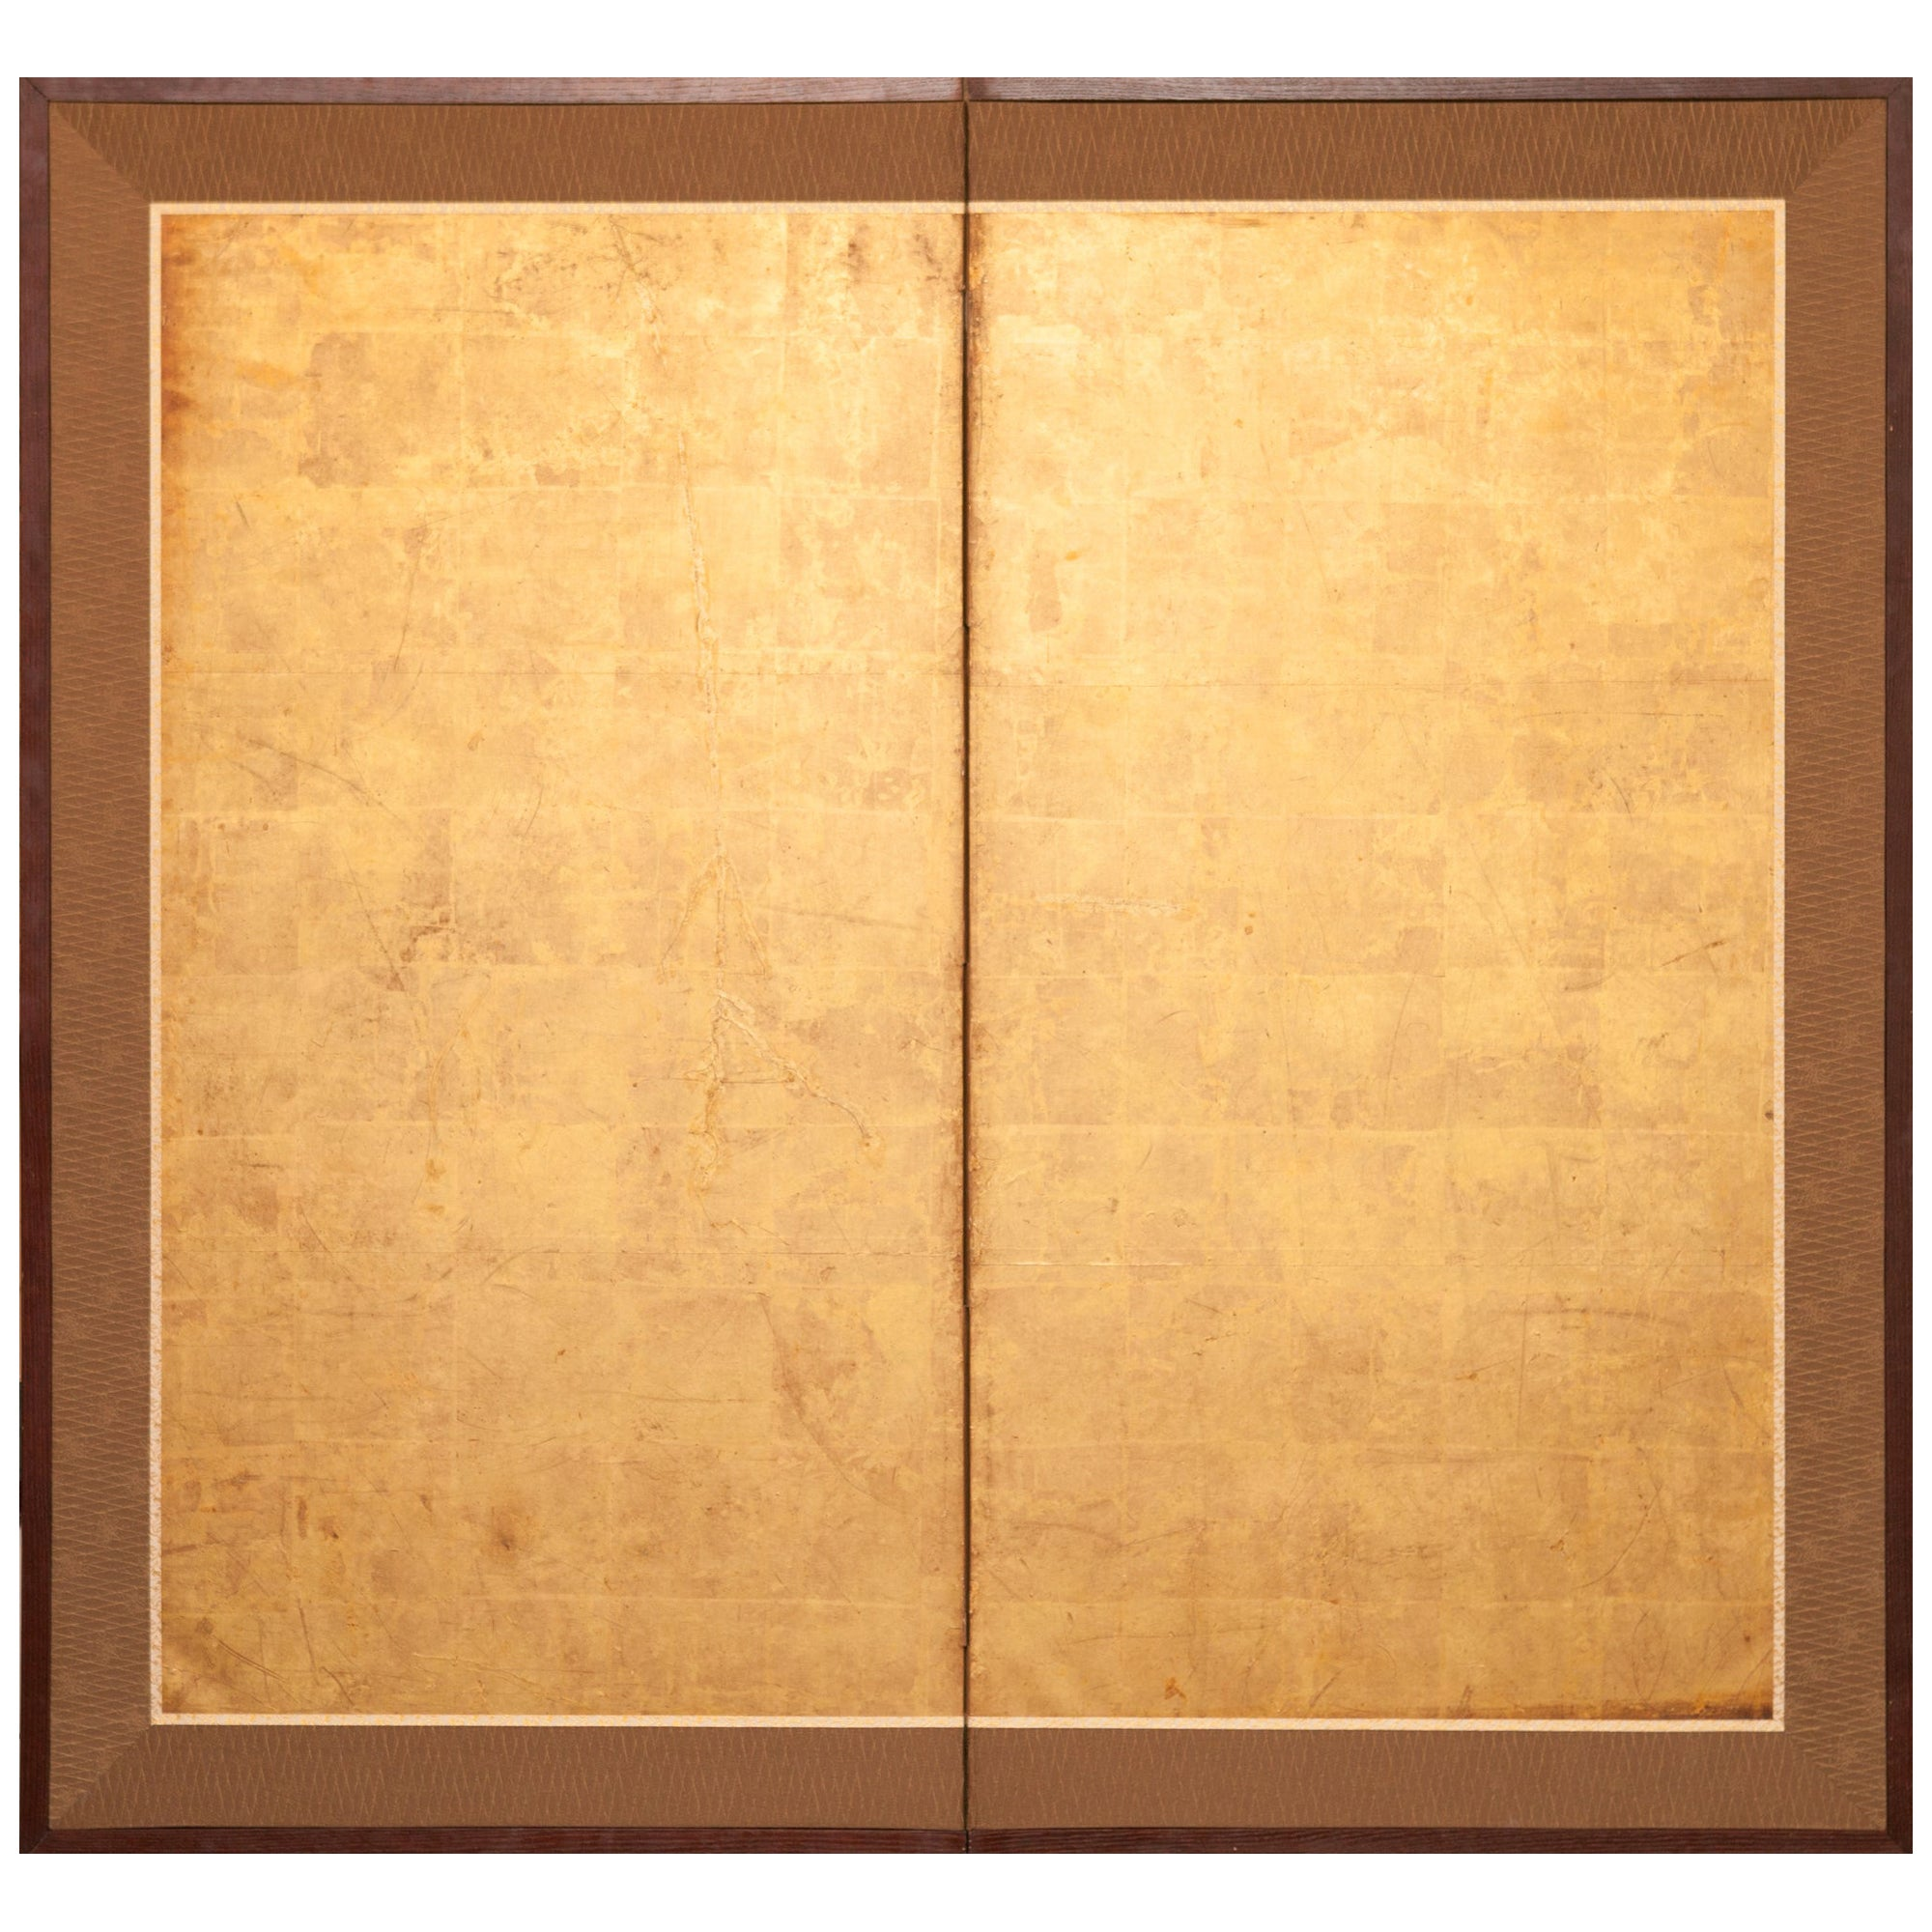 Japanese Two-Panel Screen Gold Leaf on Paper